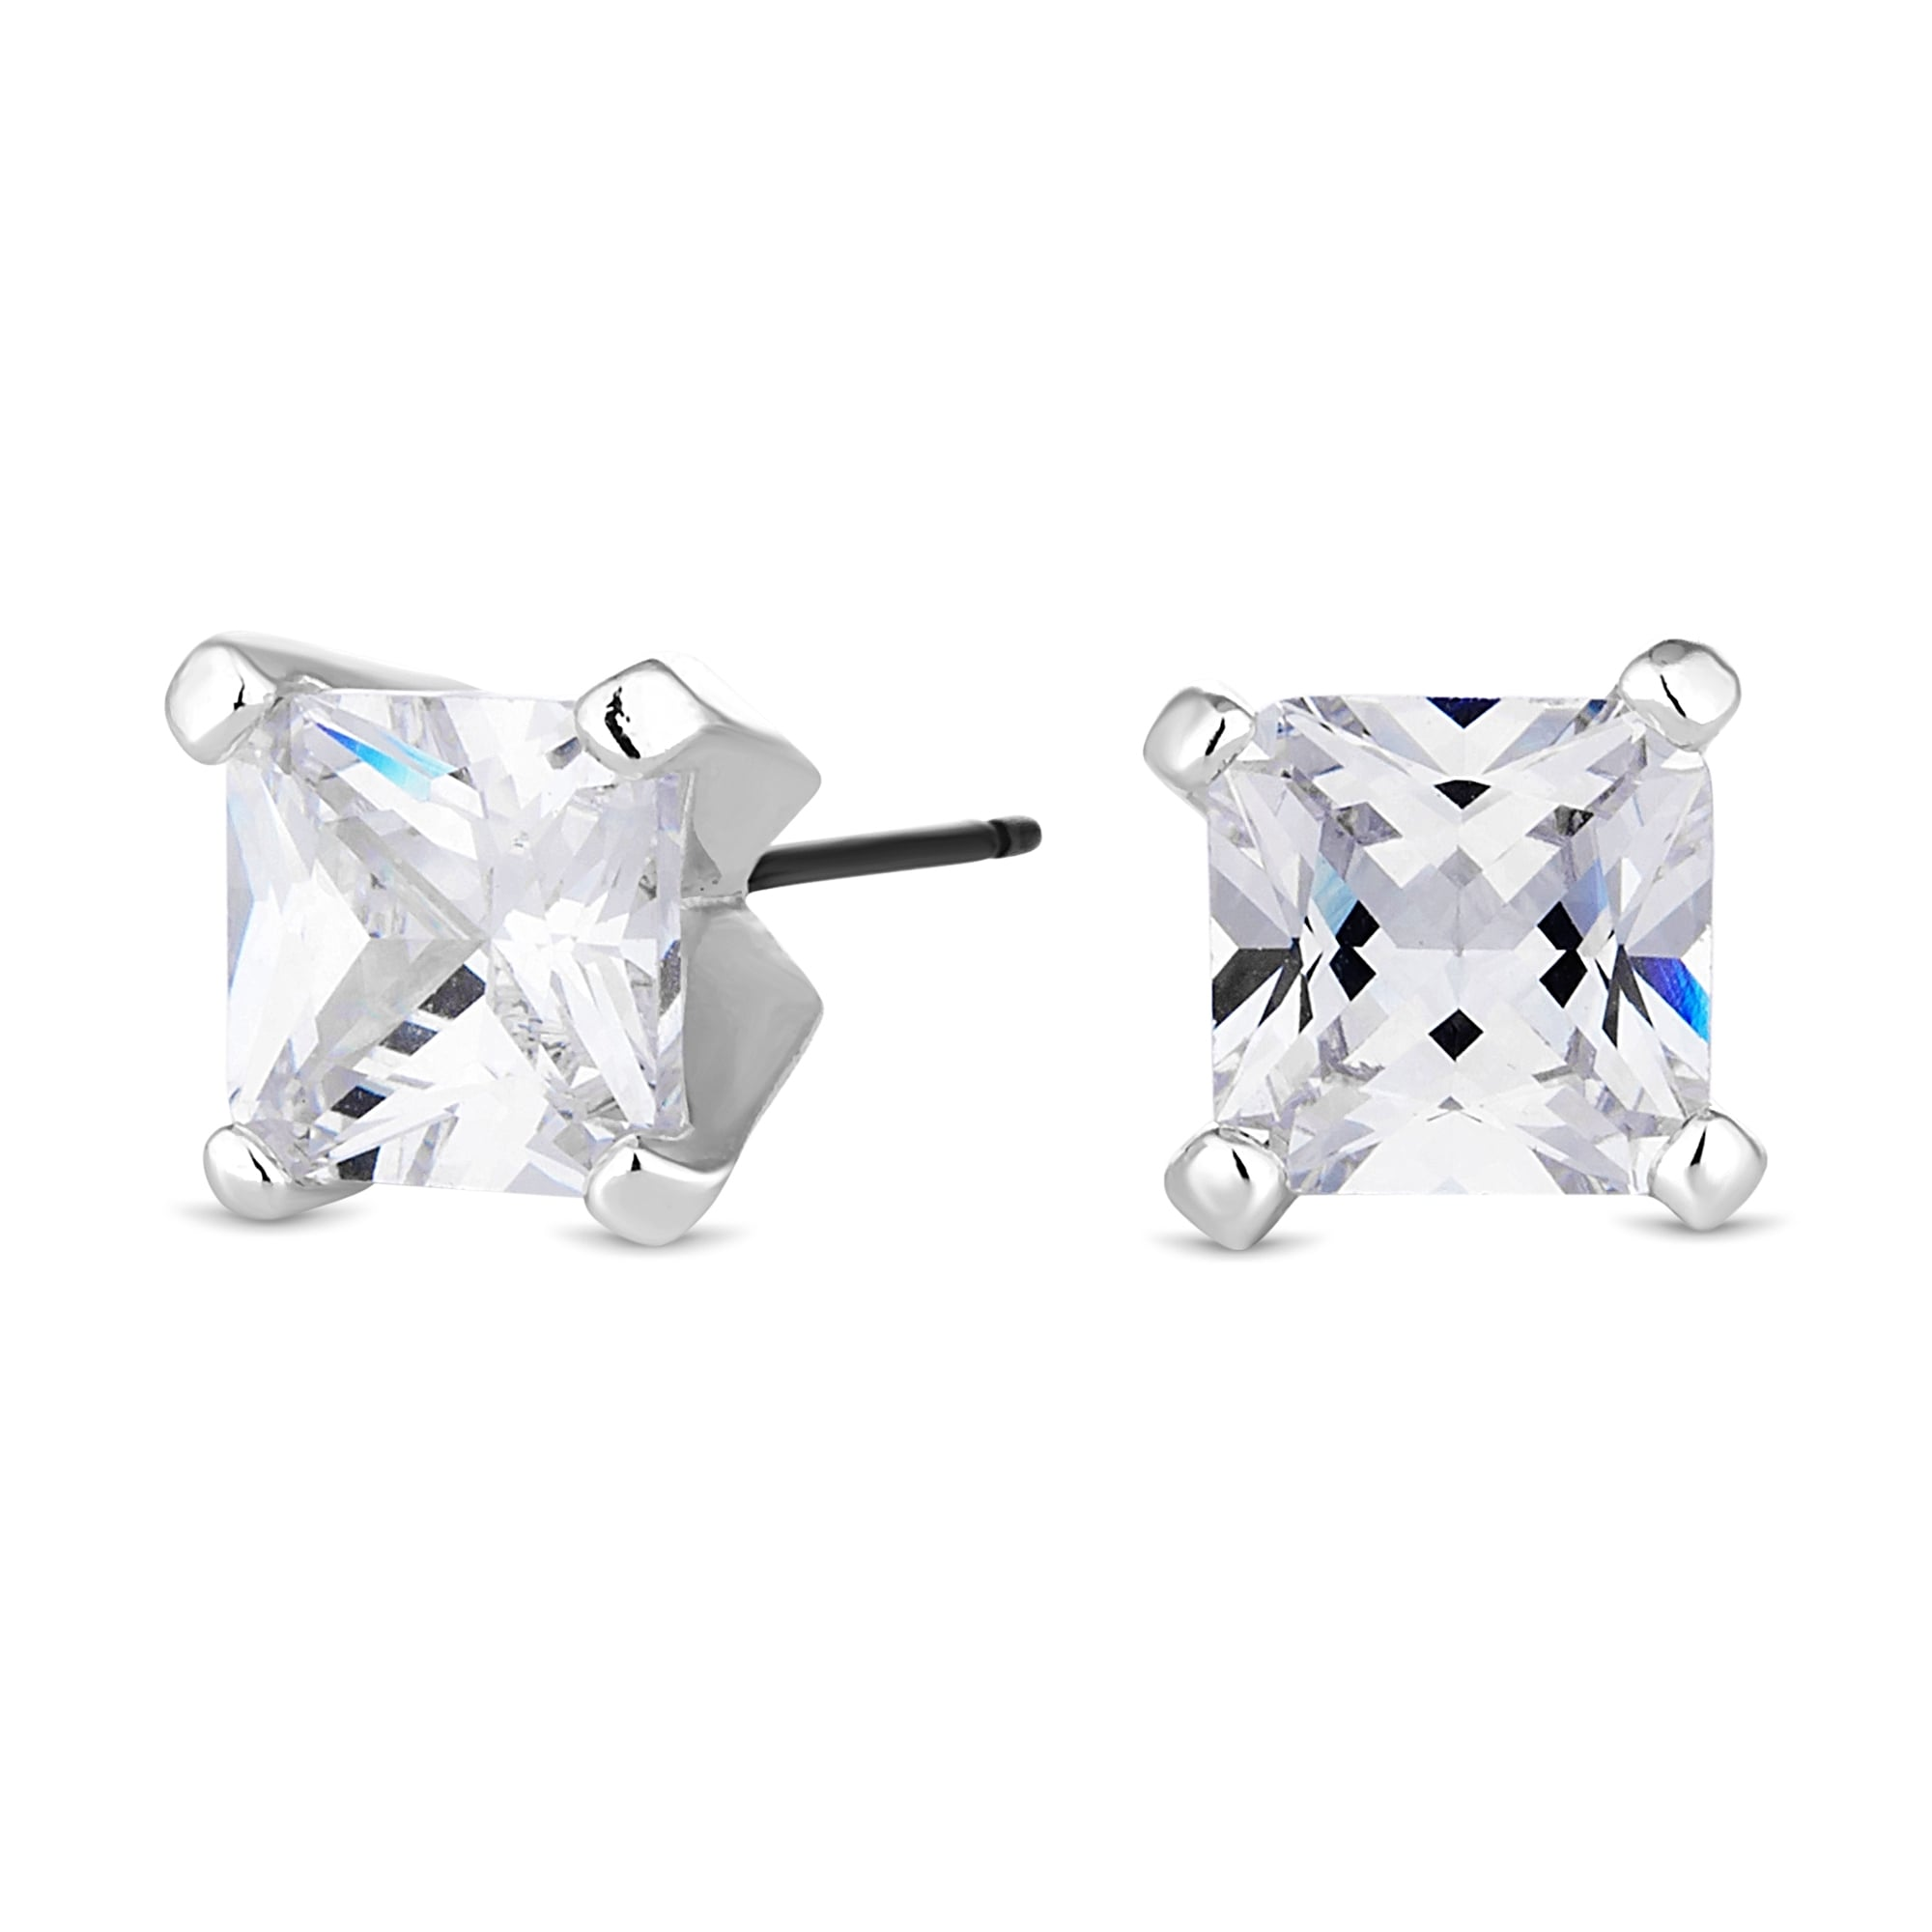 white earrings wt jewellery kiki mcdonough grace sloane studs topaz product stud